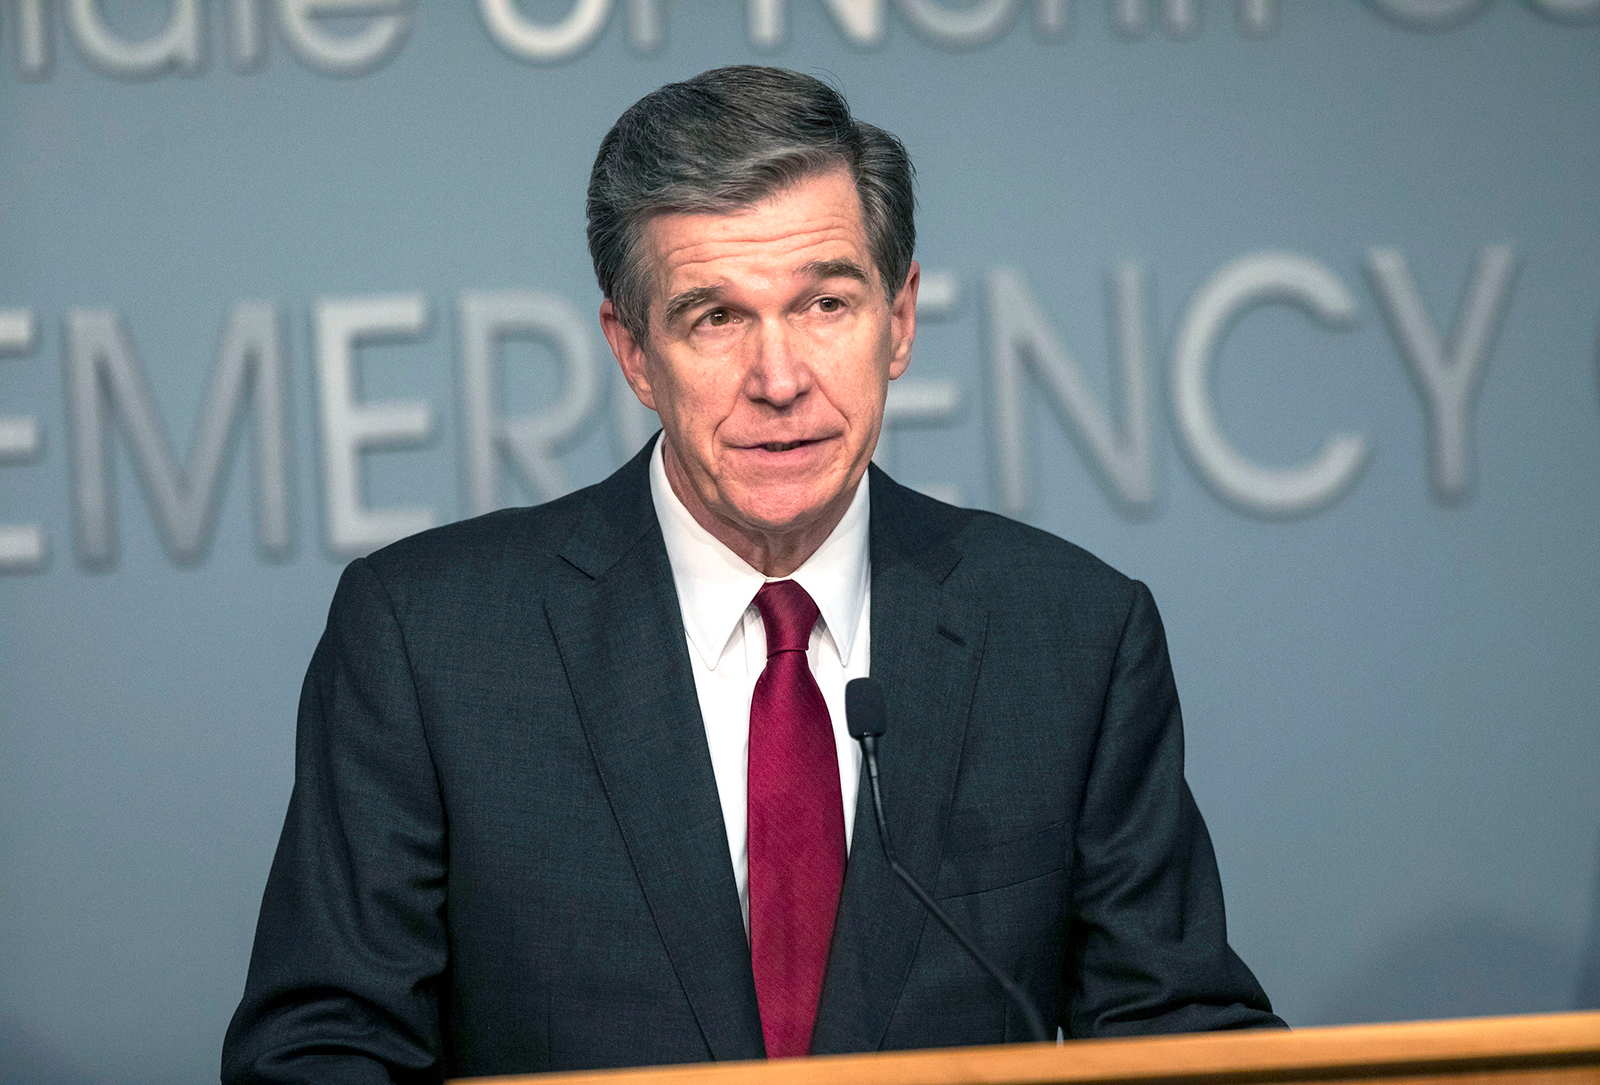 Gov. Roy Cooper delivers a briefing on North Carolina's coronavirus pandemic response at the N.C. Emergency Operations Center in Raleigh, North Carolina on June 15.